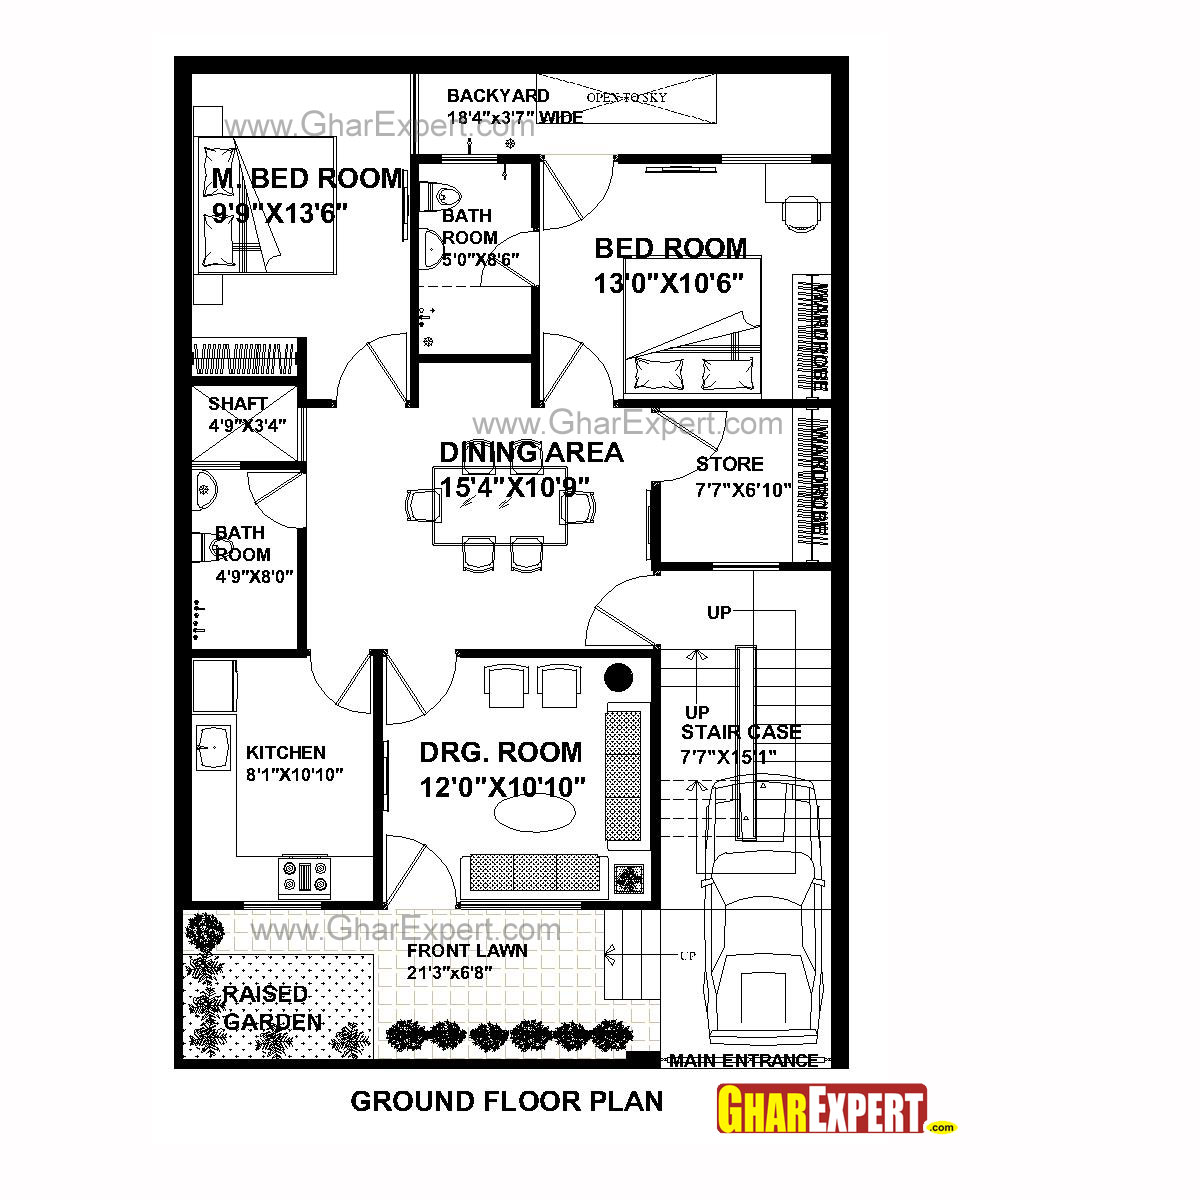 House plan for 30 feet by 45 feet plot plot size 150 30 by 45 house plans